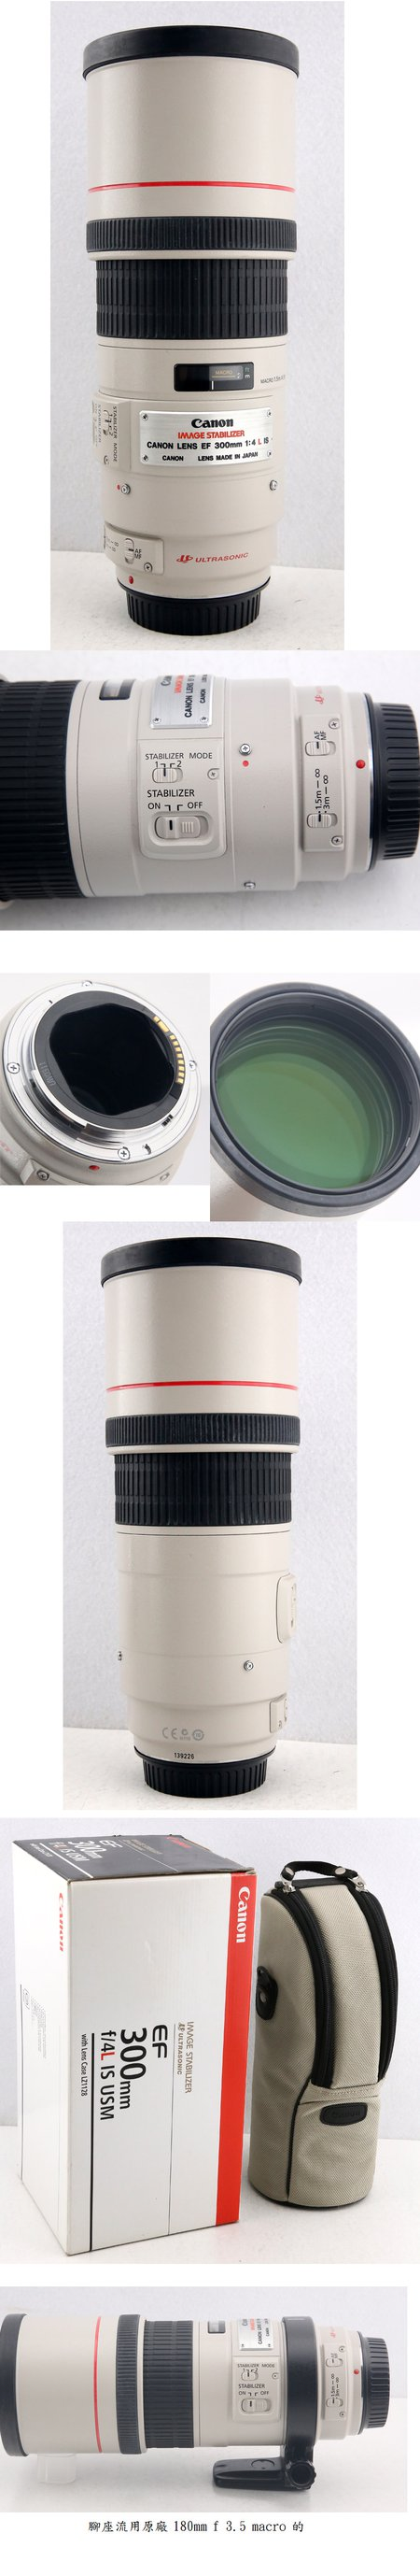 EF 300mm f4 IS L 防手震